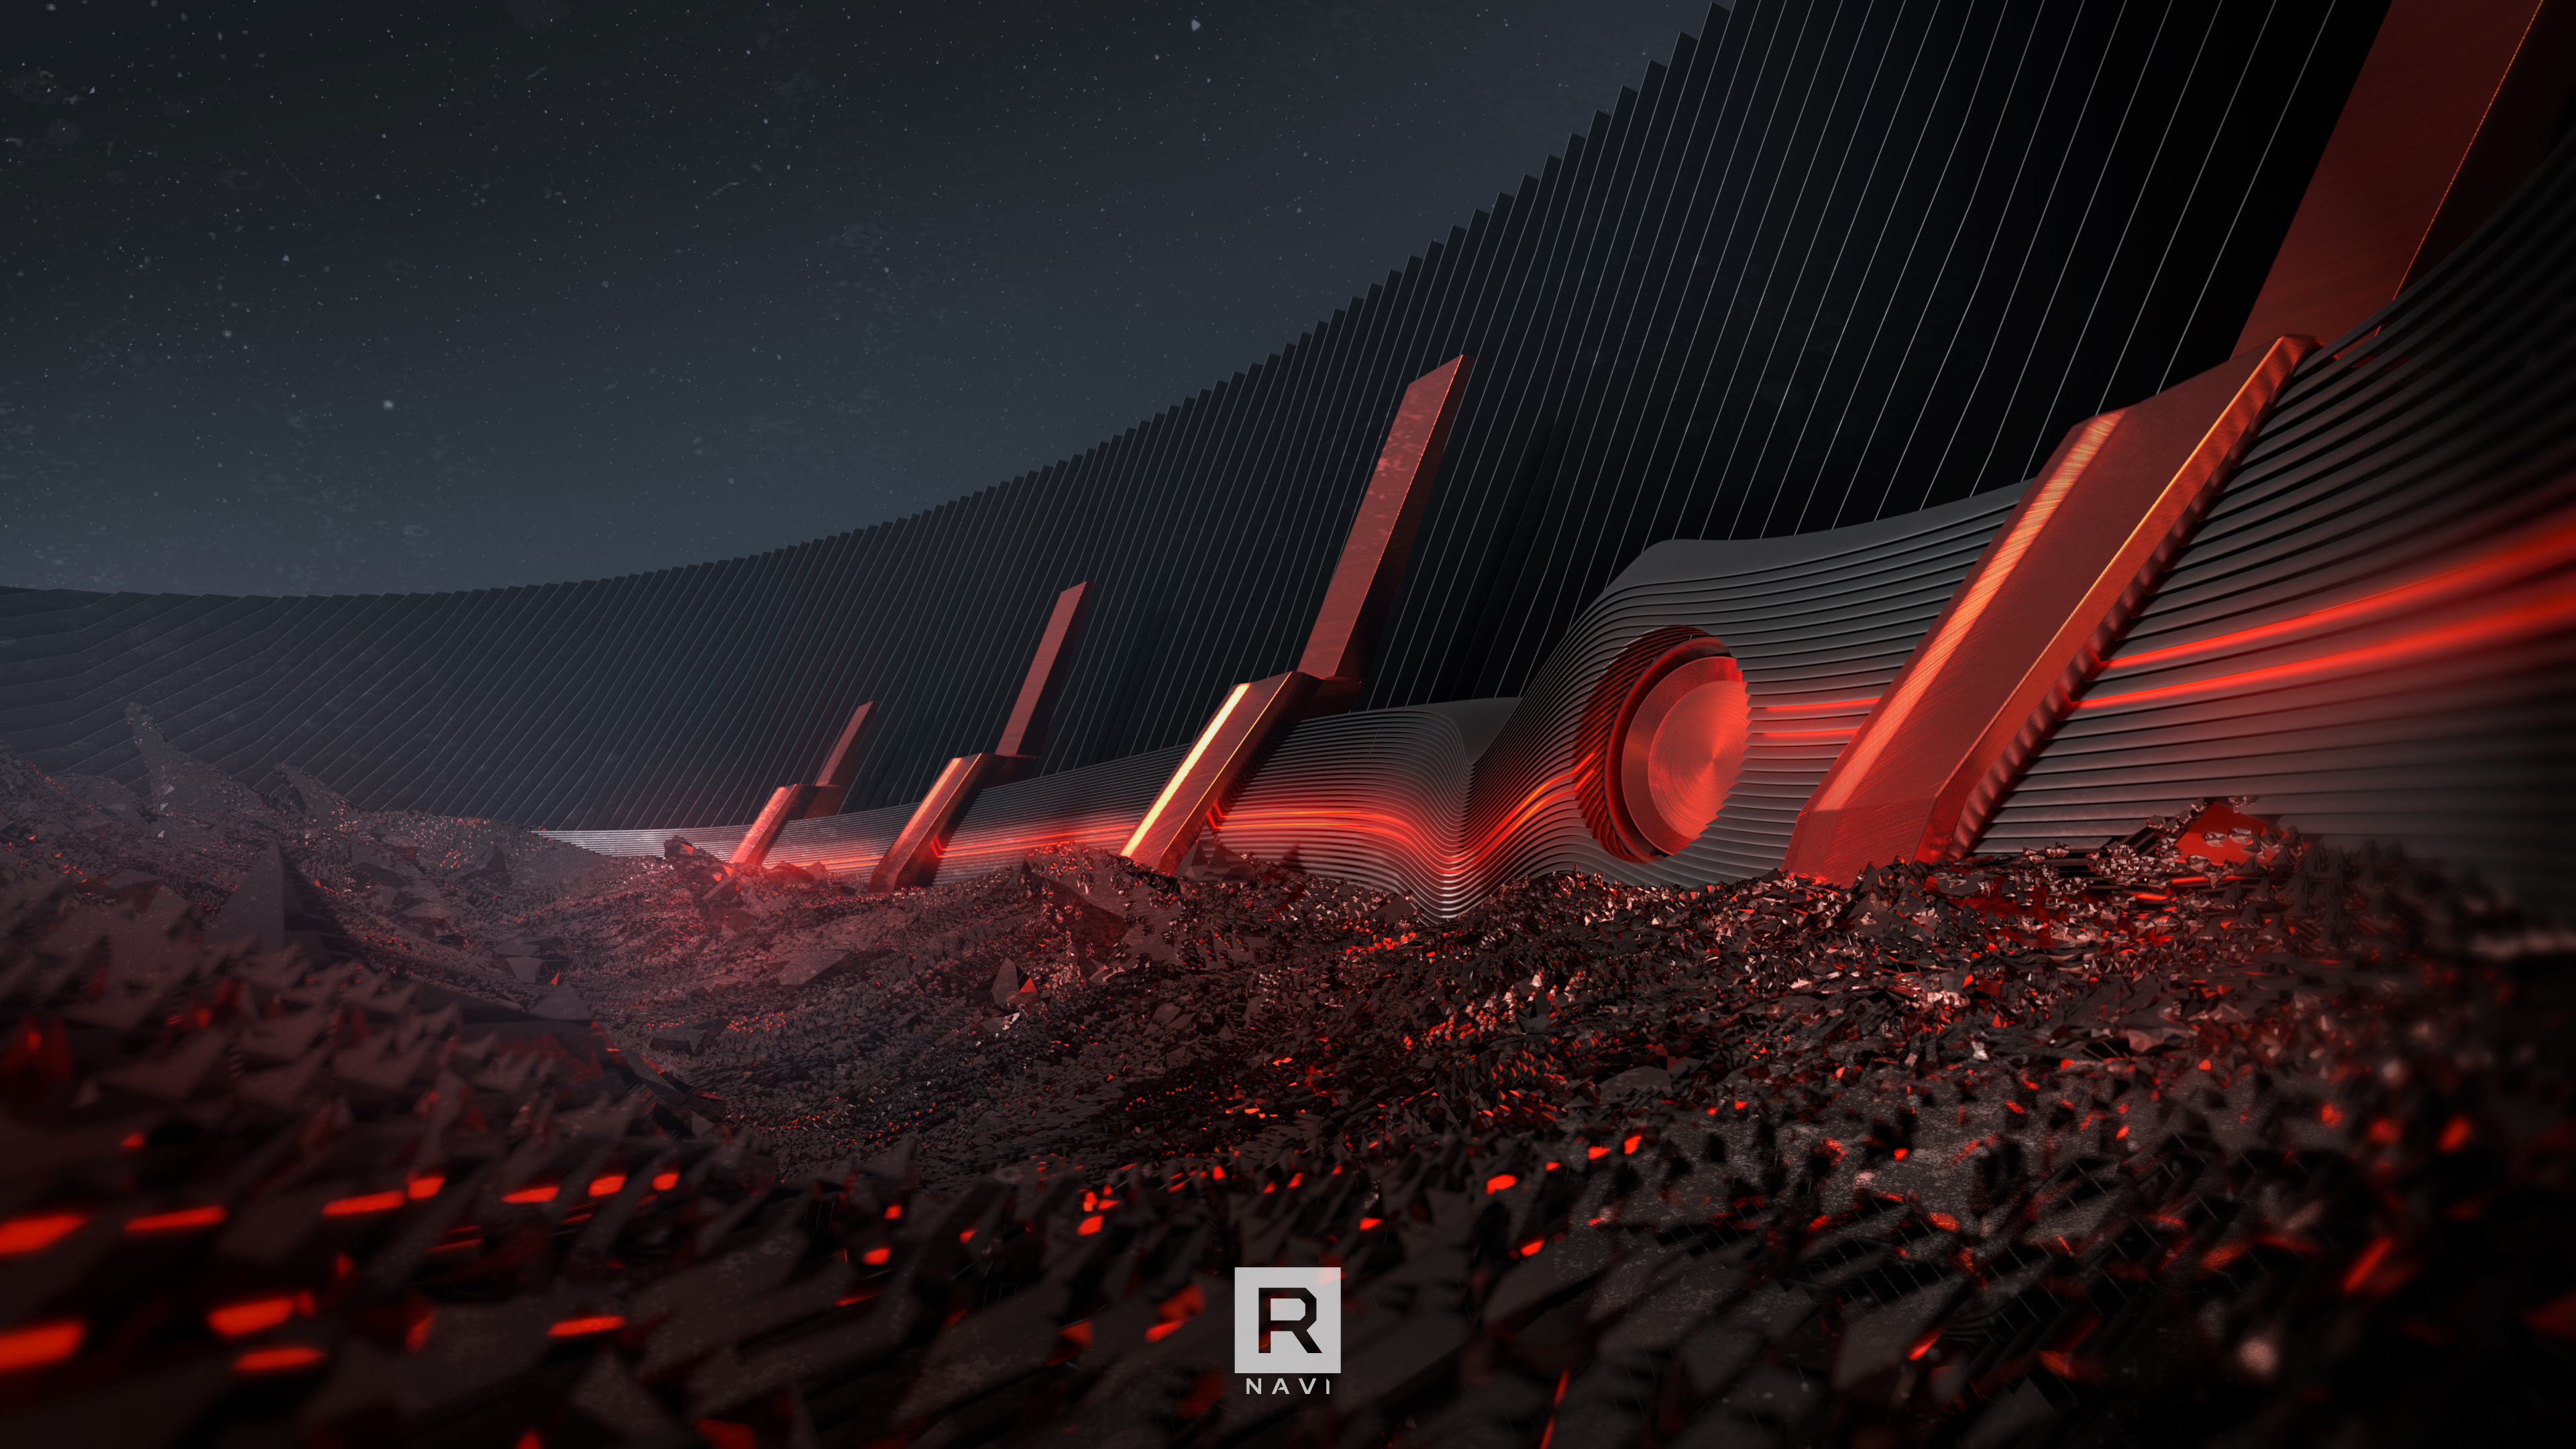 AMD Readies Navi 23 High-End 'NVIDIA Killer' GPU For Radeon RX Flagship, Alleges Rumor – Arrives Next Year With Ray Tracing Support